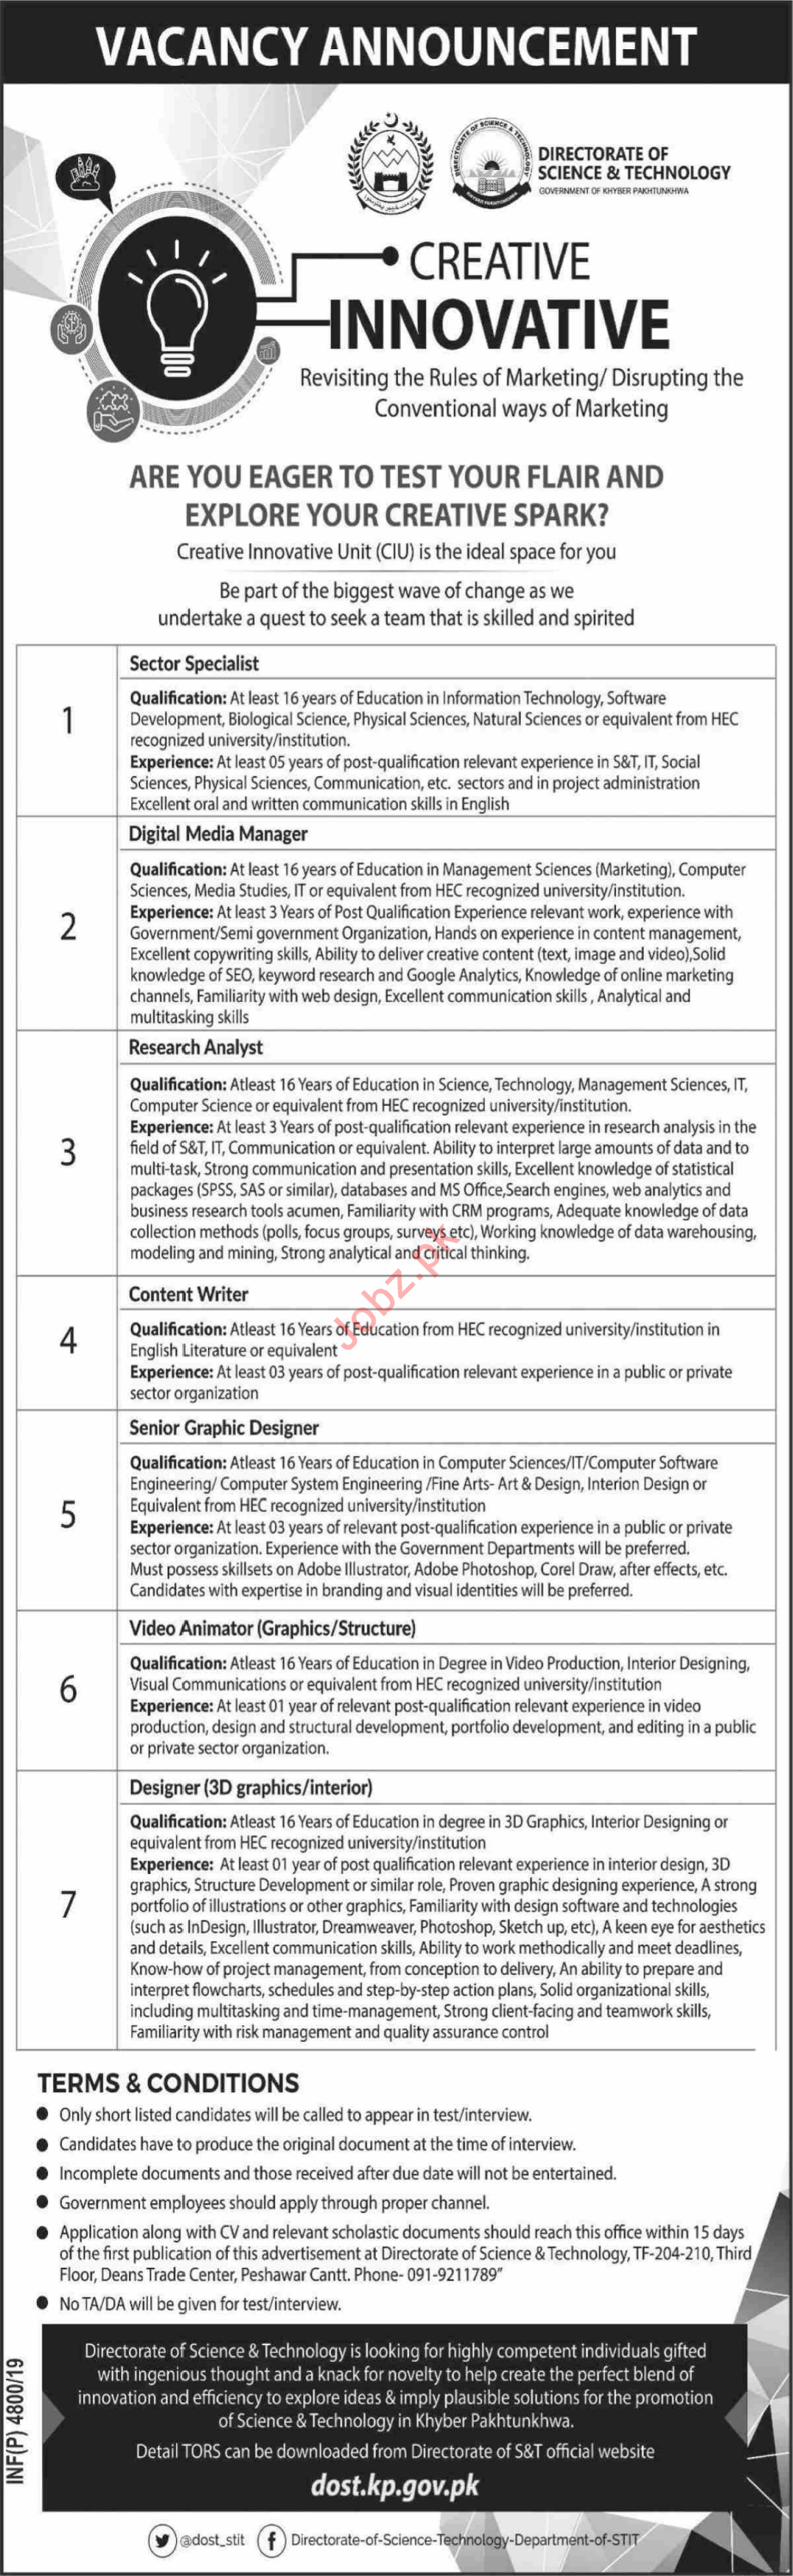 Directorate of Science & Technology DOST Jobs 2019